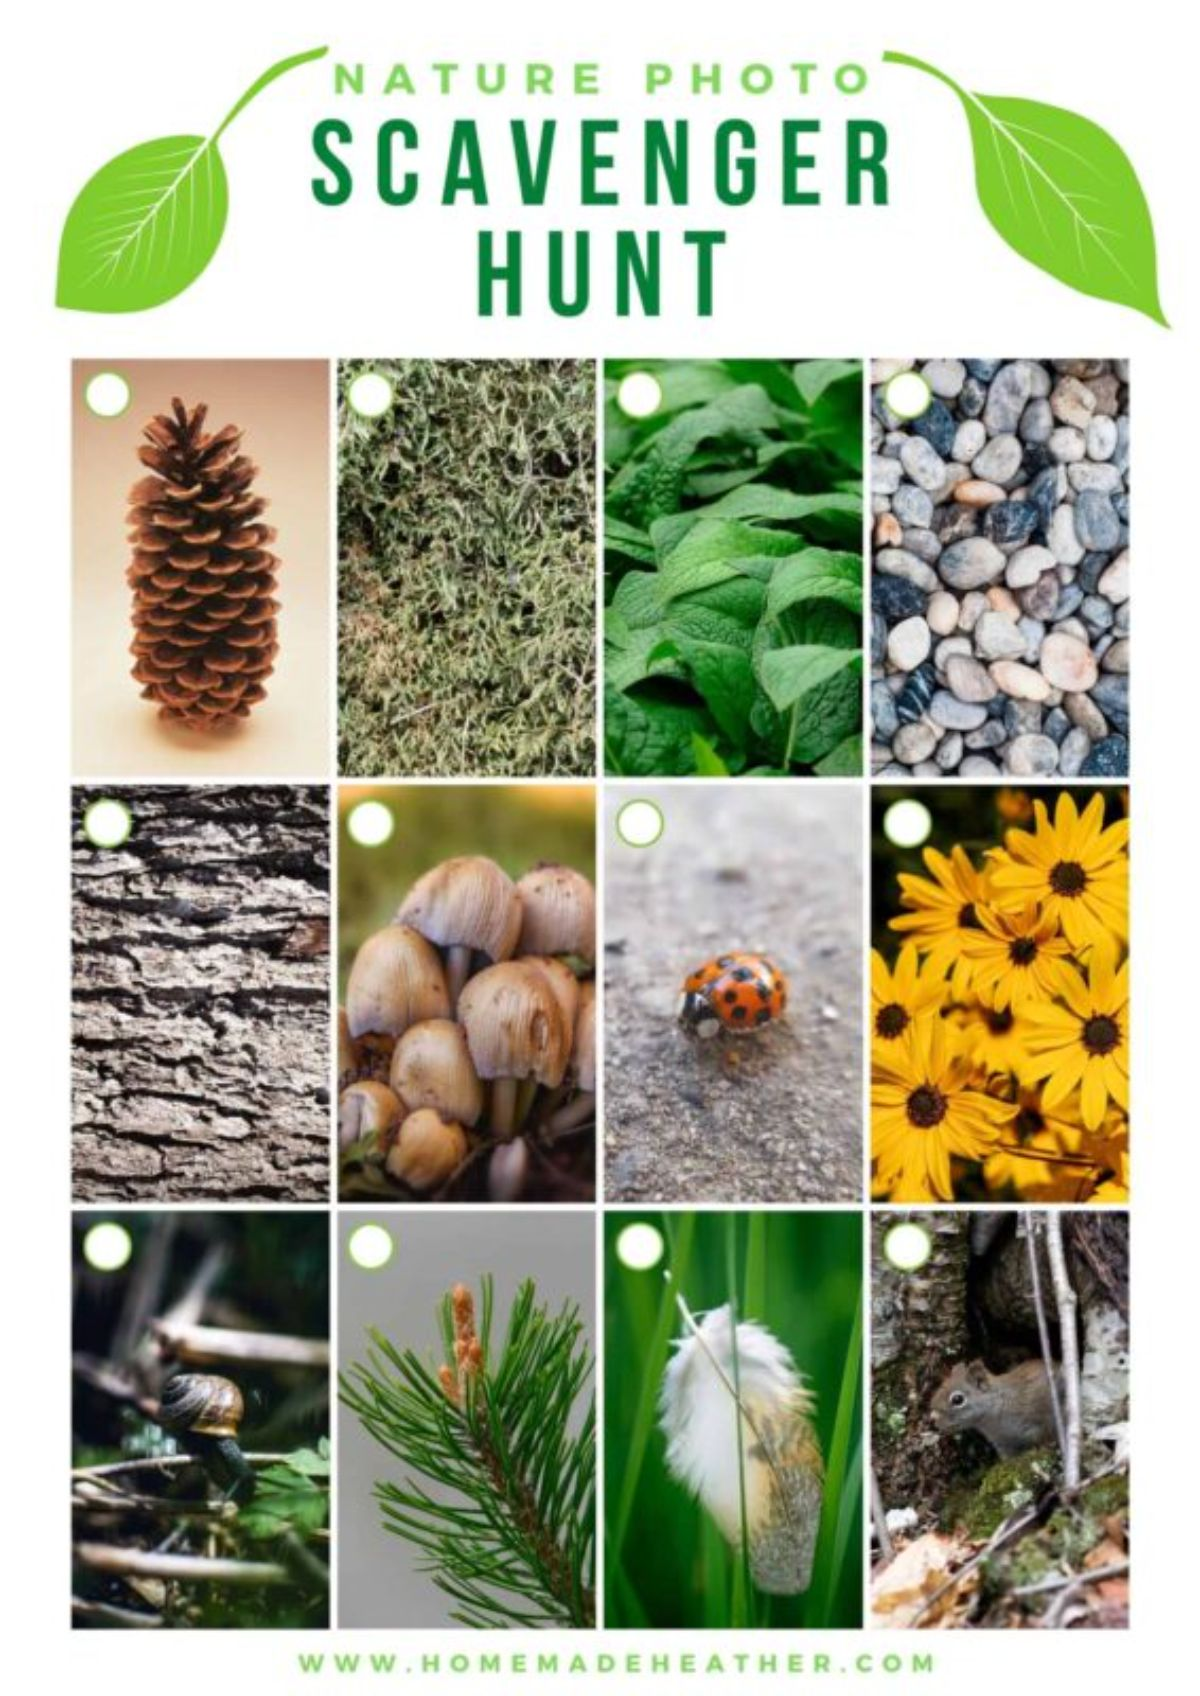 """The text reads """"Nature photo scavenger hunt"""" and below are 12 blocks with different nature items in them. Each box has a circle to check"""